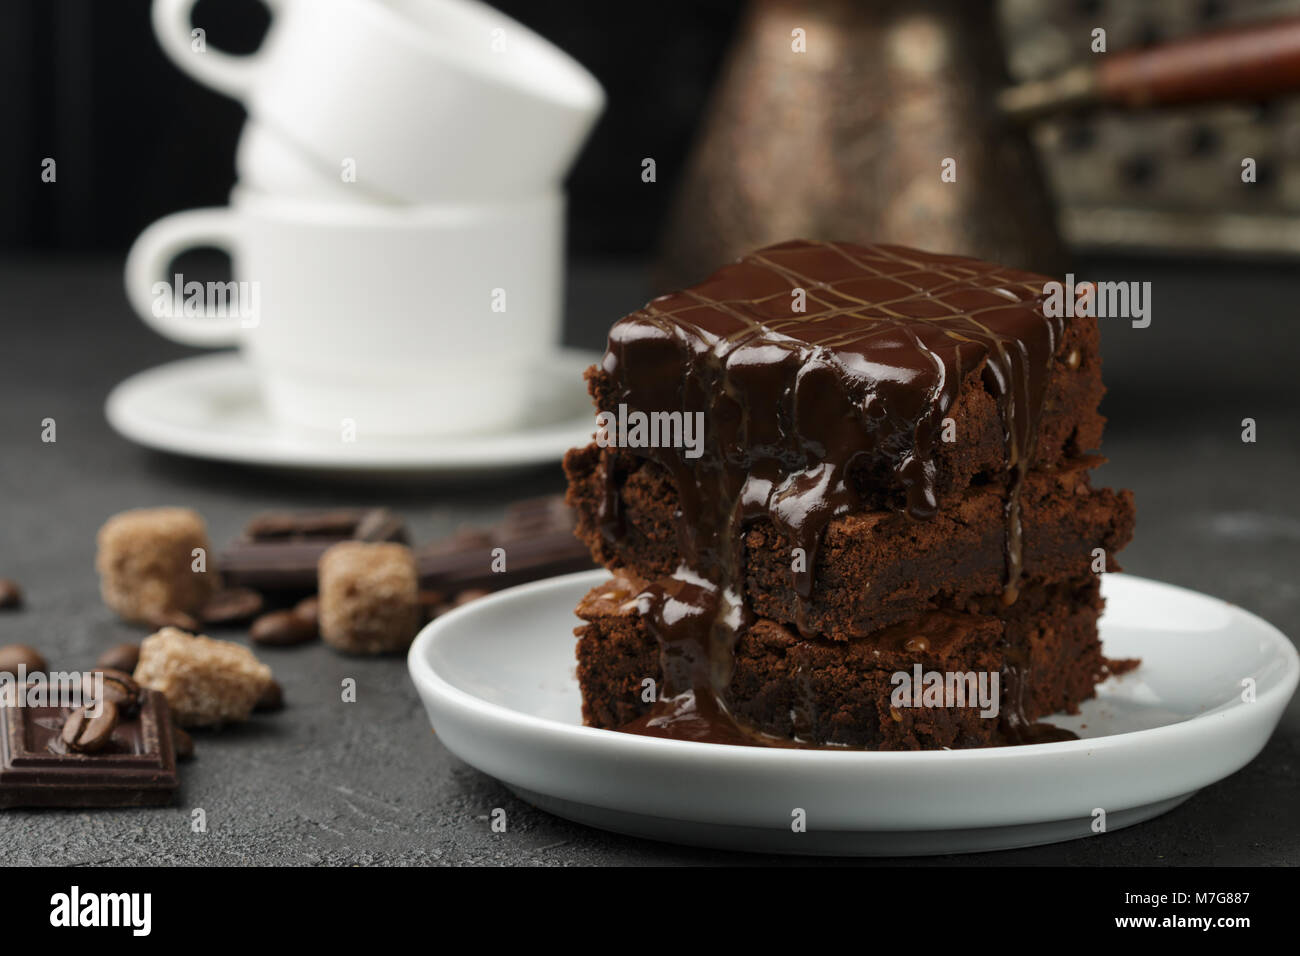 Delicious homemade brownie with chocolate sauce and caramel on the table. Selective focus Stock Photo